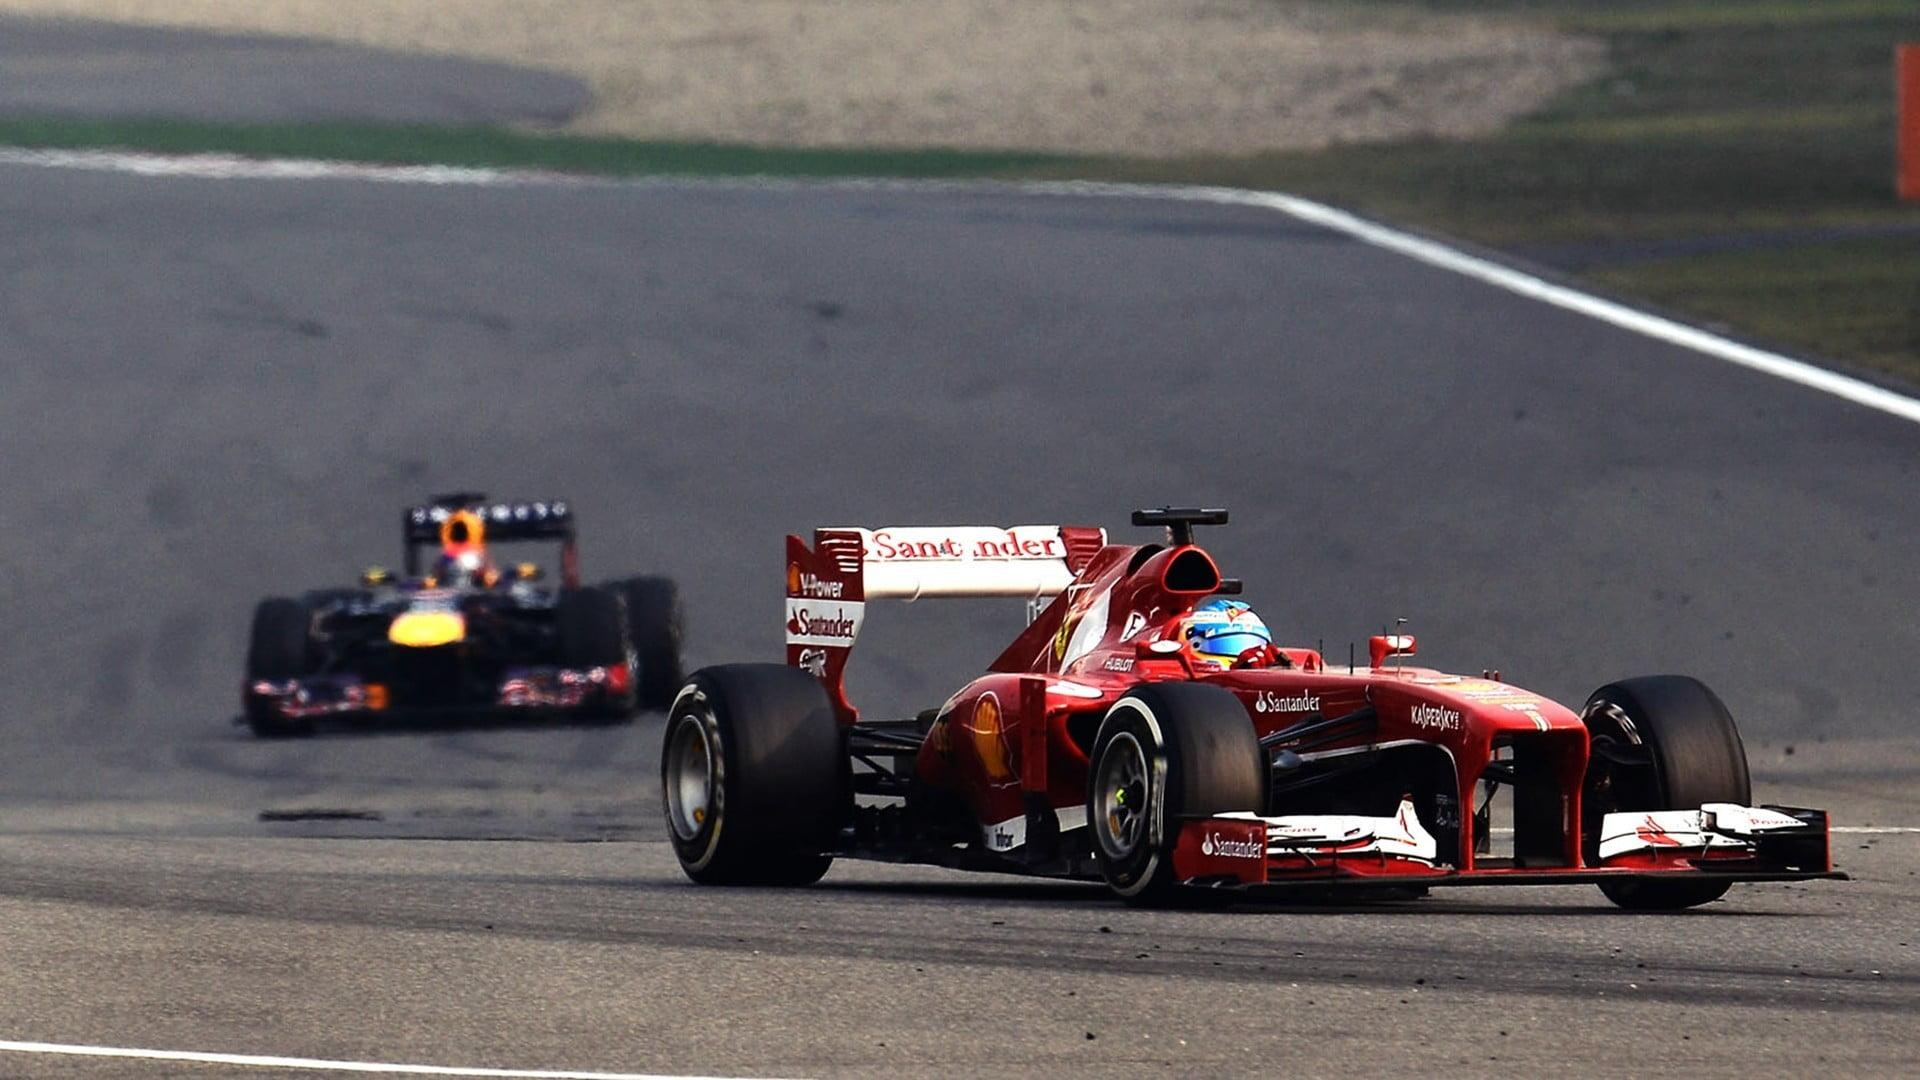 Red racing car, Fernando Alonso, Ferrari, Formula 1, Scuderia ...